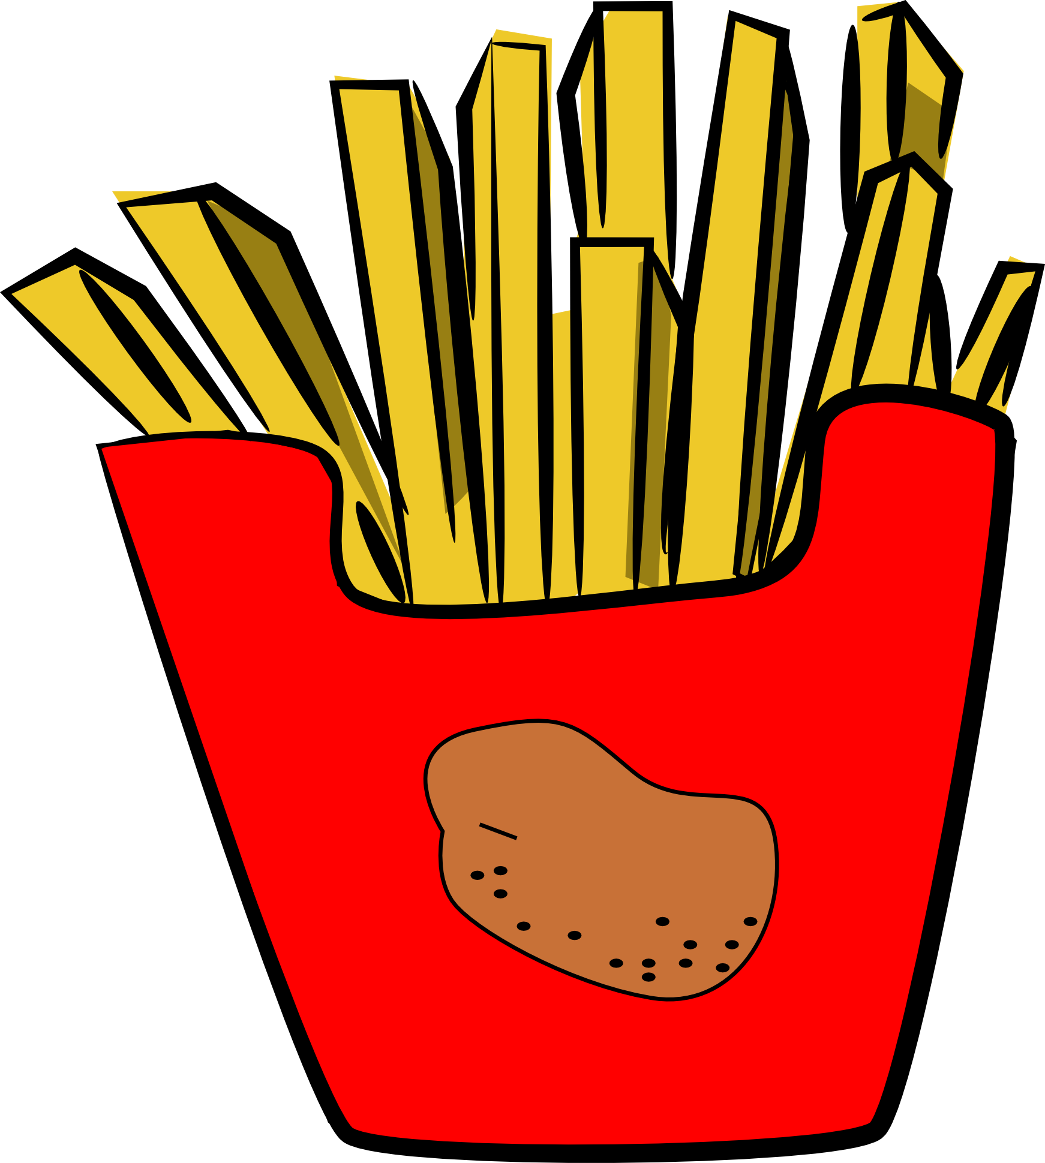 Fries cartoon clipart clipart download Free Images Of French Fries, Download Free Clip Art, Free Clip Art ... clipart download